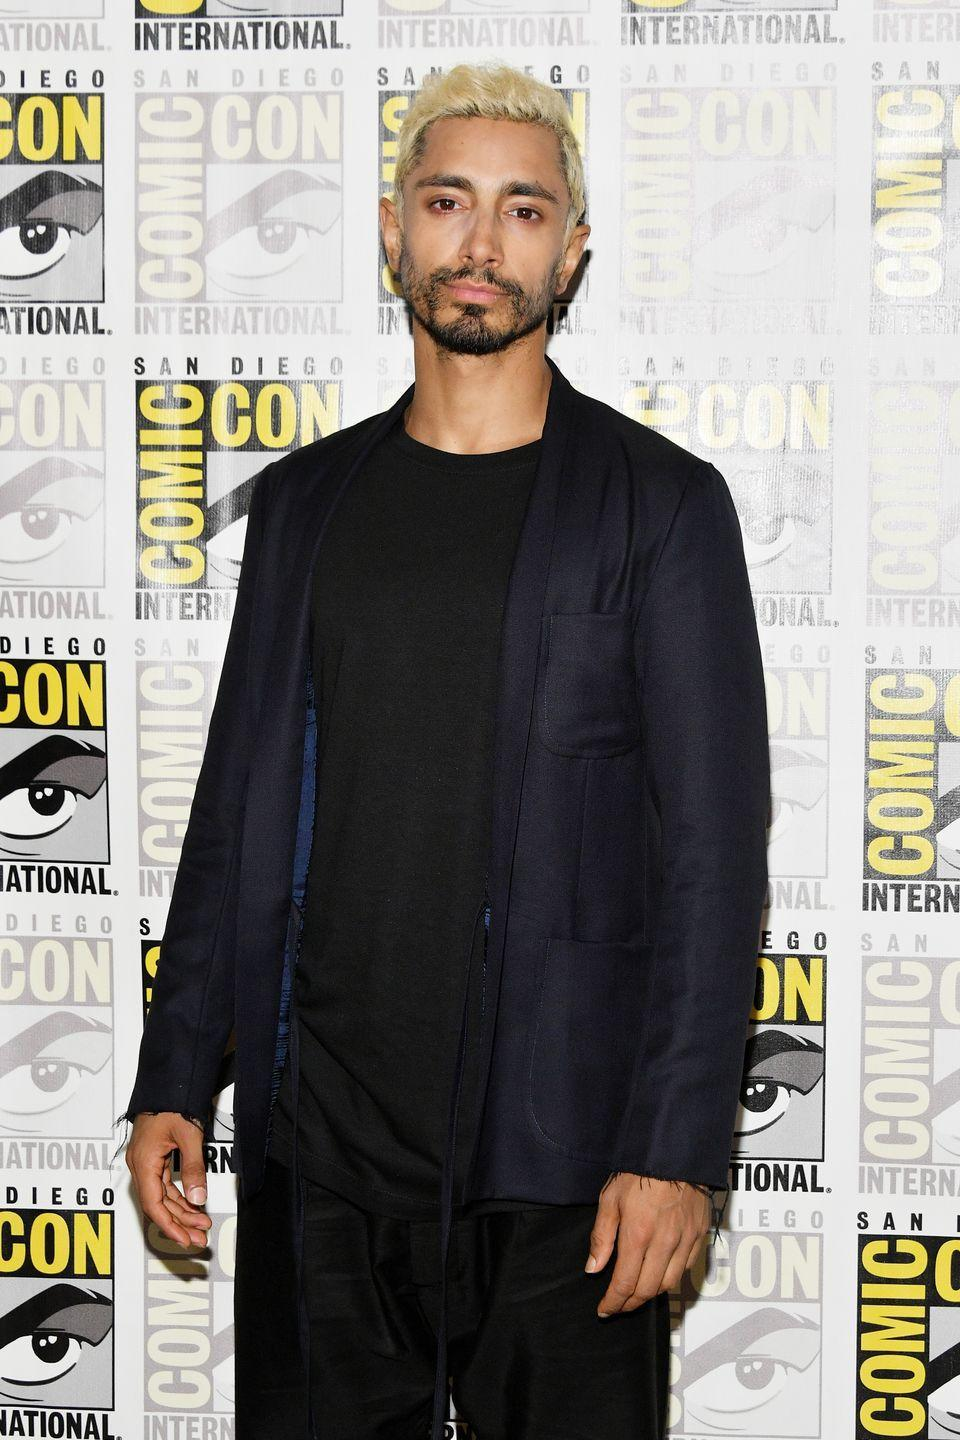 <p><strong>Blonde</strong></p><p>Although the platinum blond hair might look a <em>tad </em>too brassy for the <em>Rogue One </em>star's skin tone, Ahmed looks really good rocking the trend!</p>